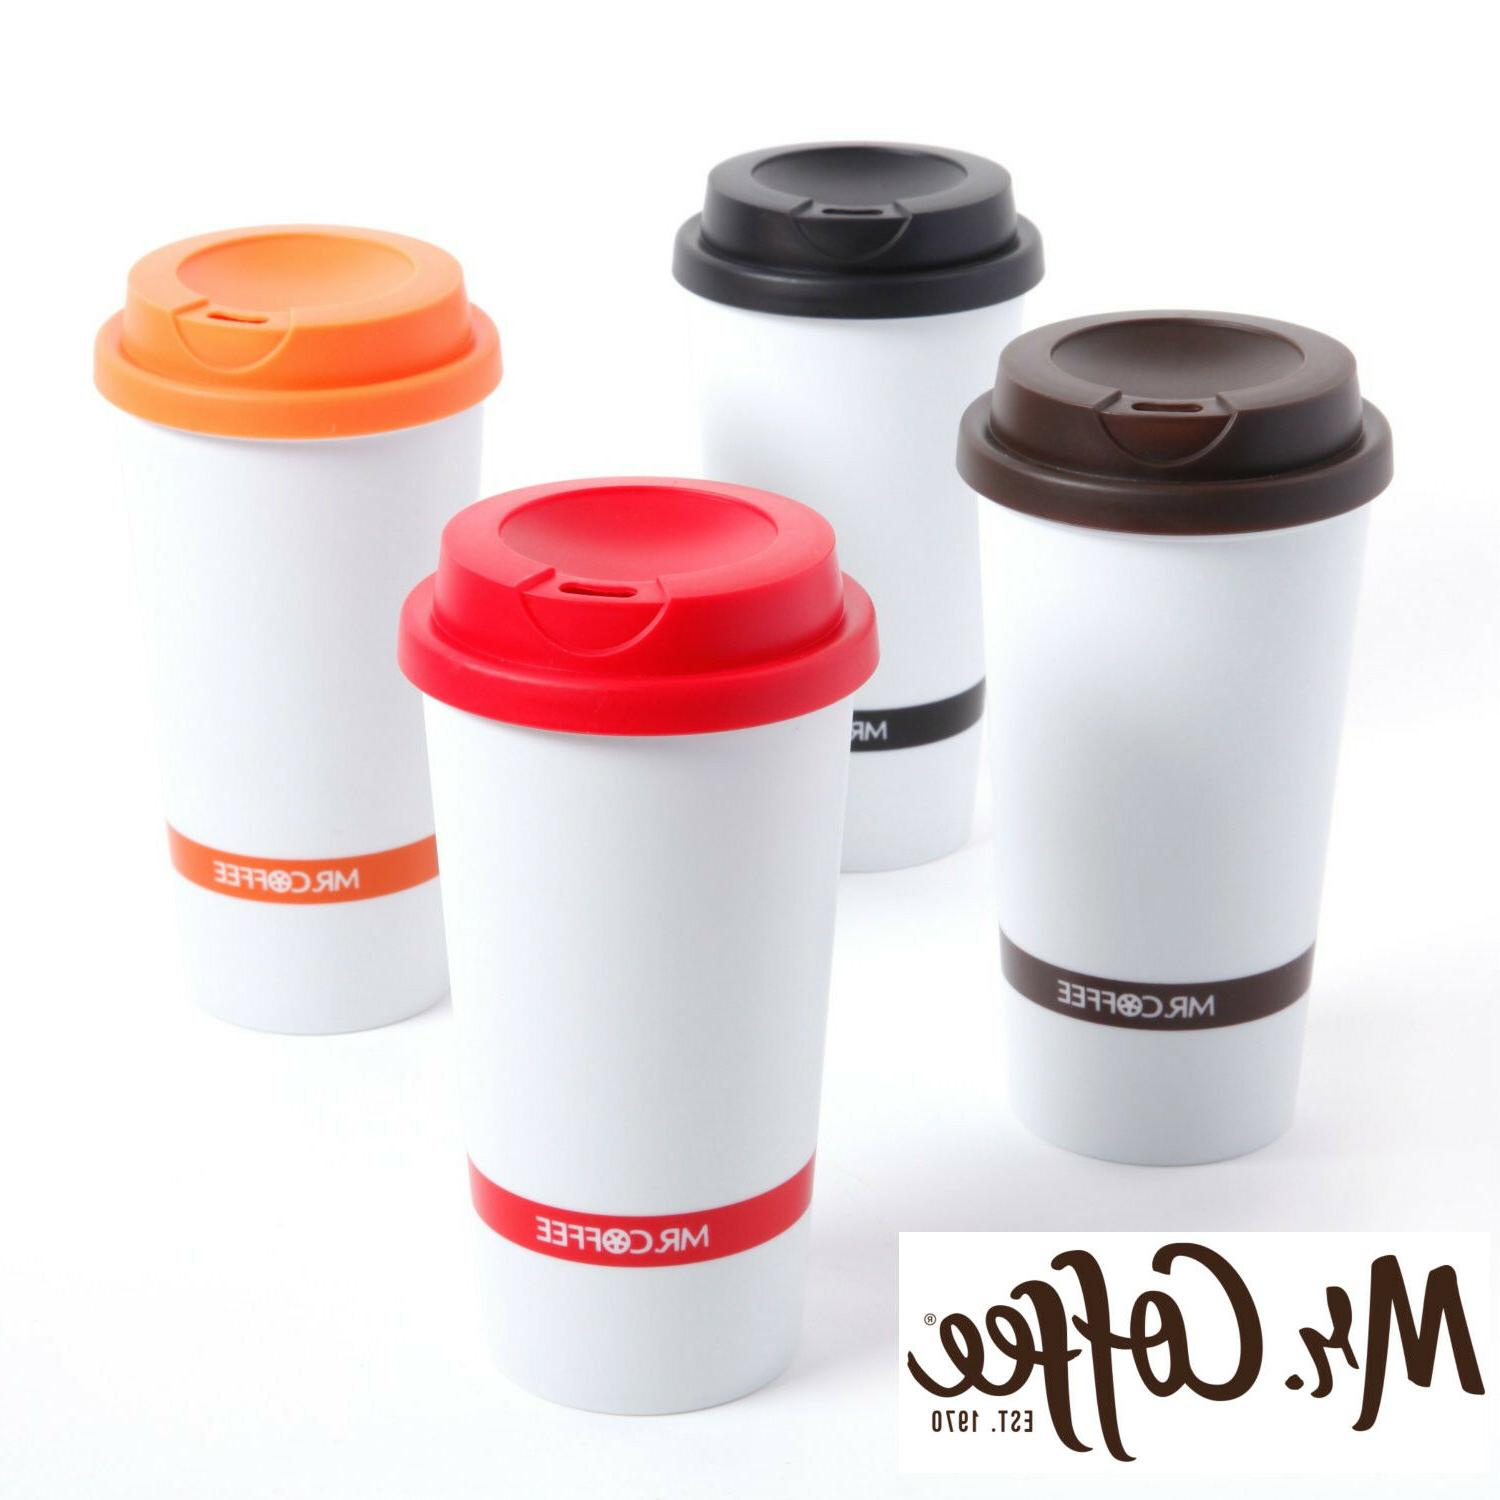 16oz double wall insulated travel mug coffee